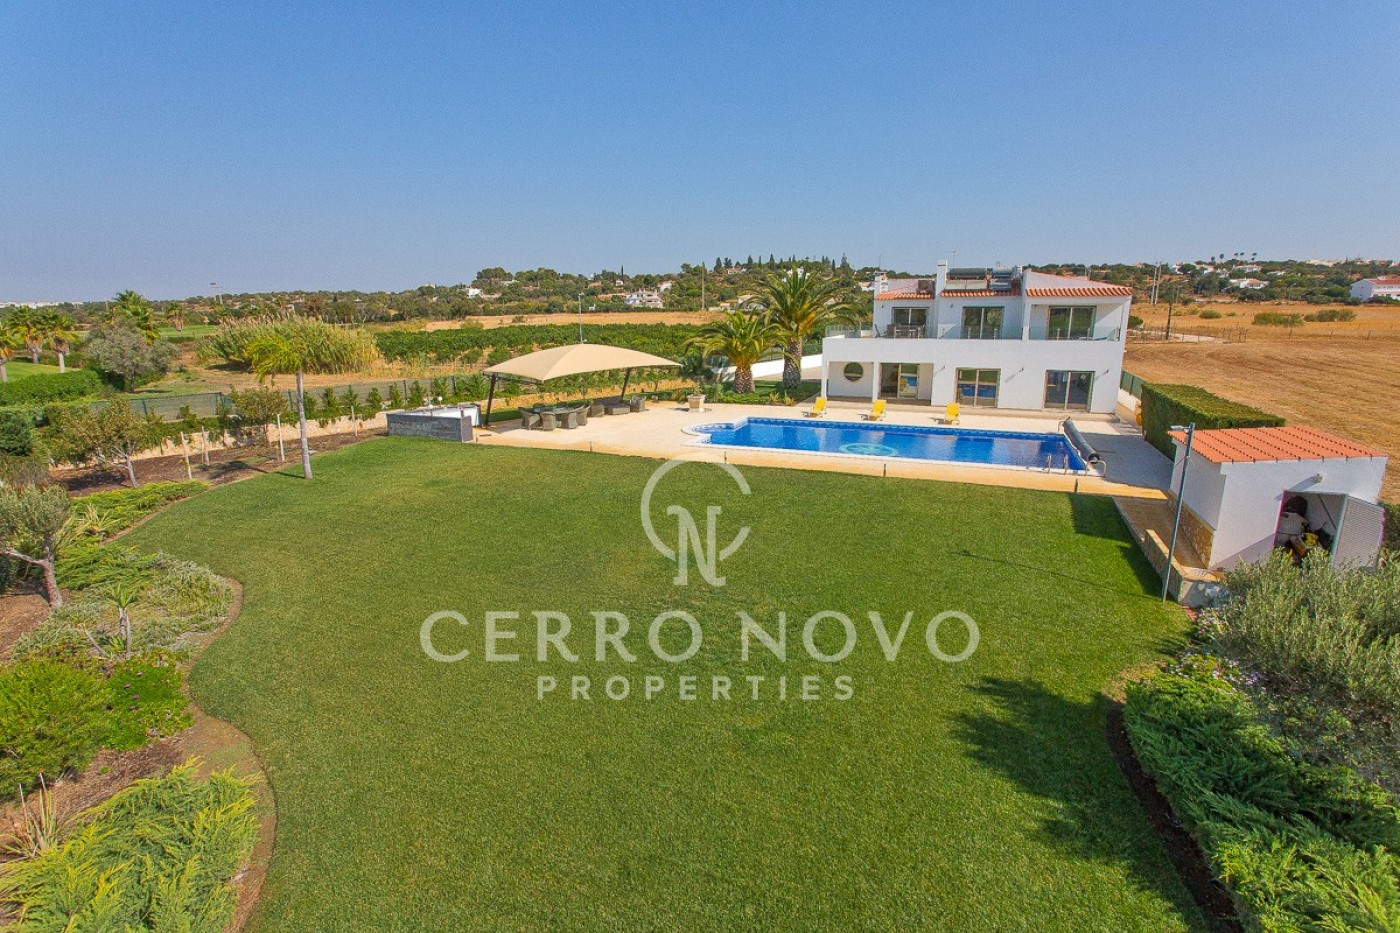 Secluded five bedroom villa in privileged position directly overlooking golf course